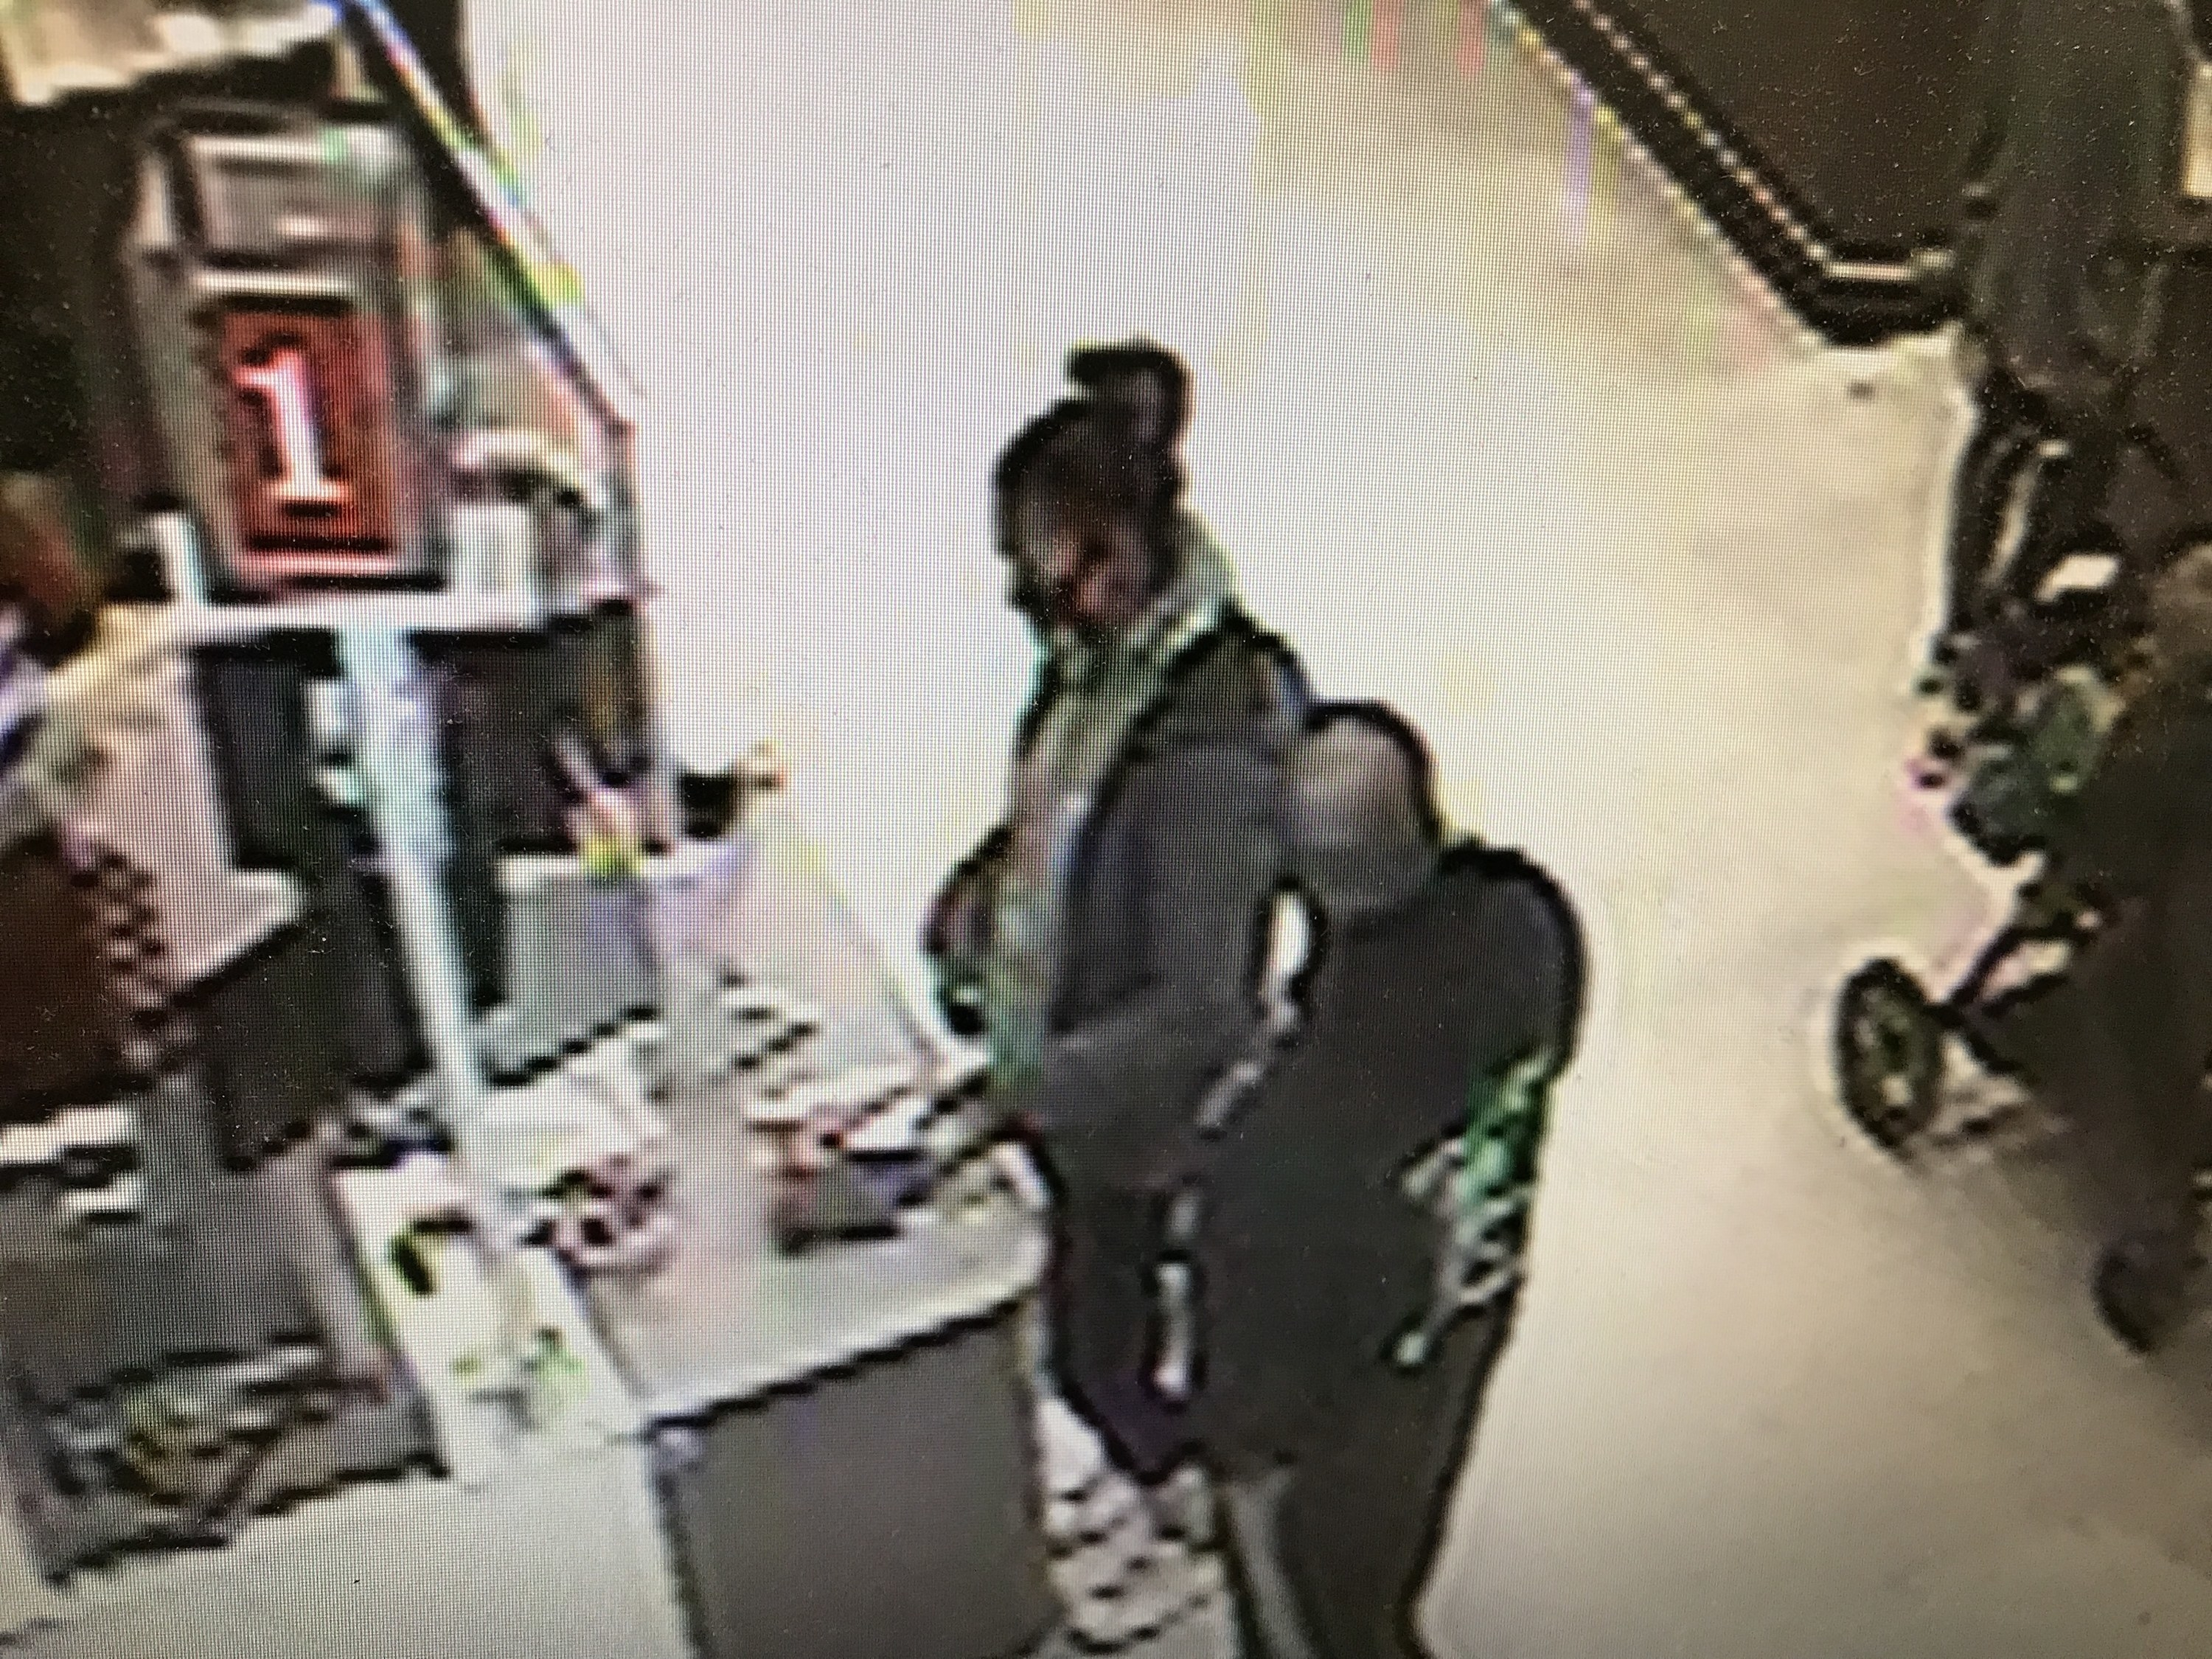 A security camera photo shows a man and woman standing close by at a checkout counter